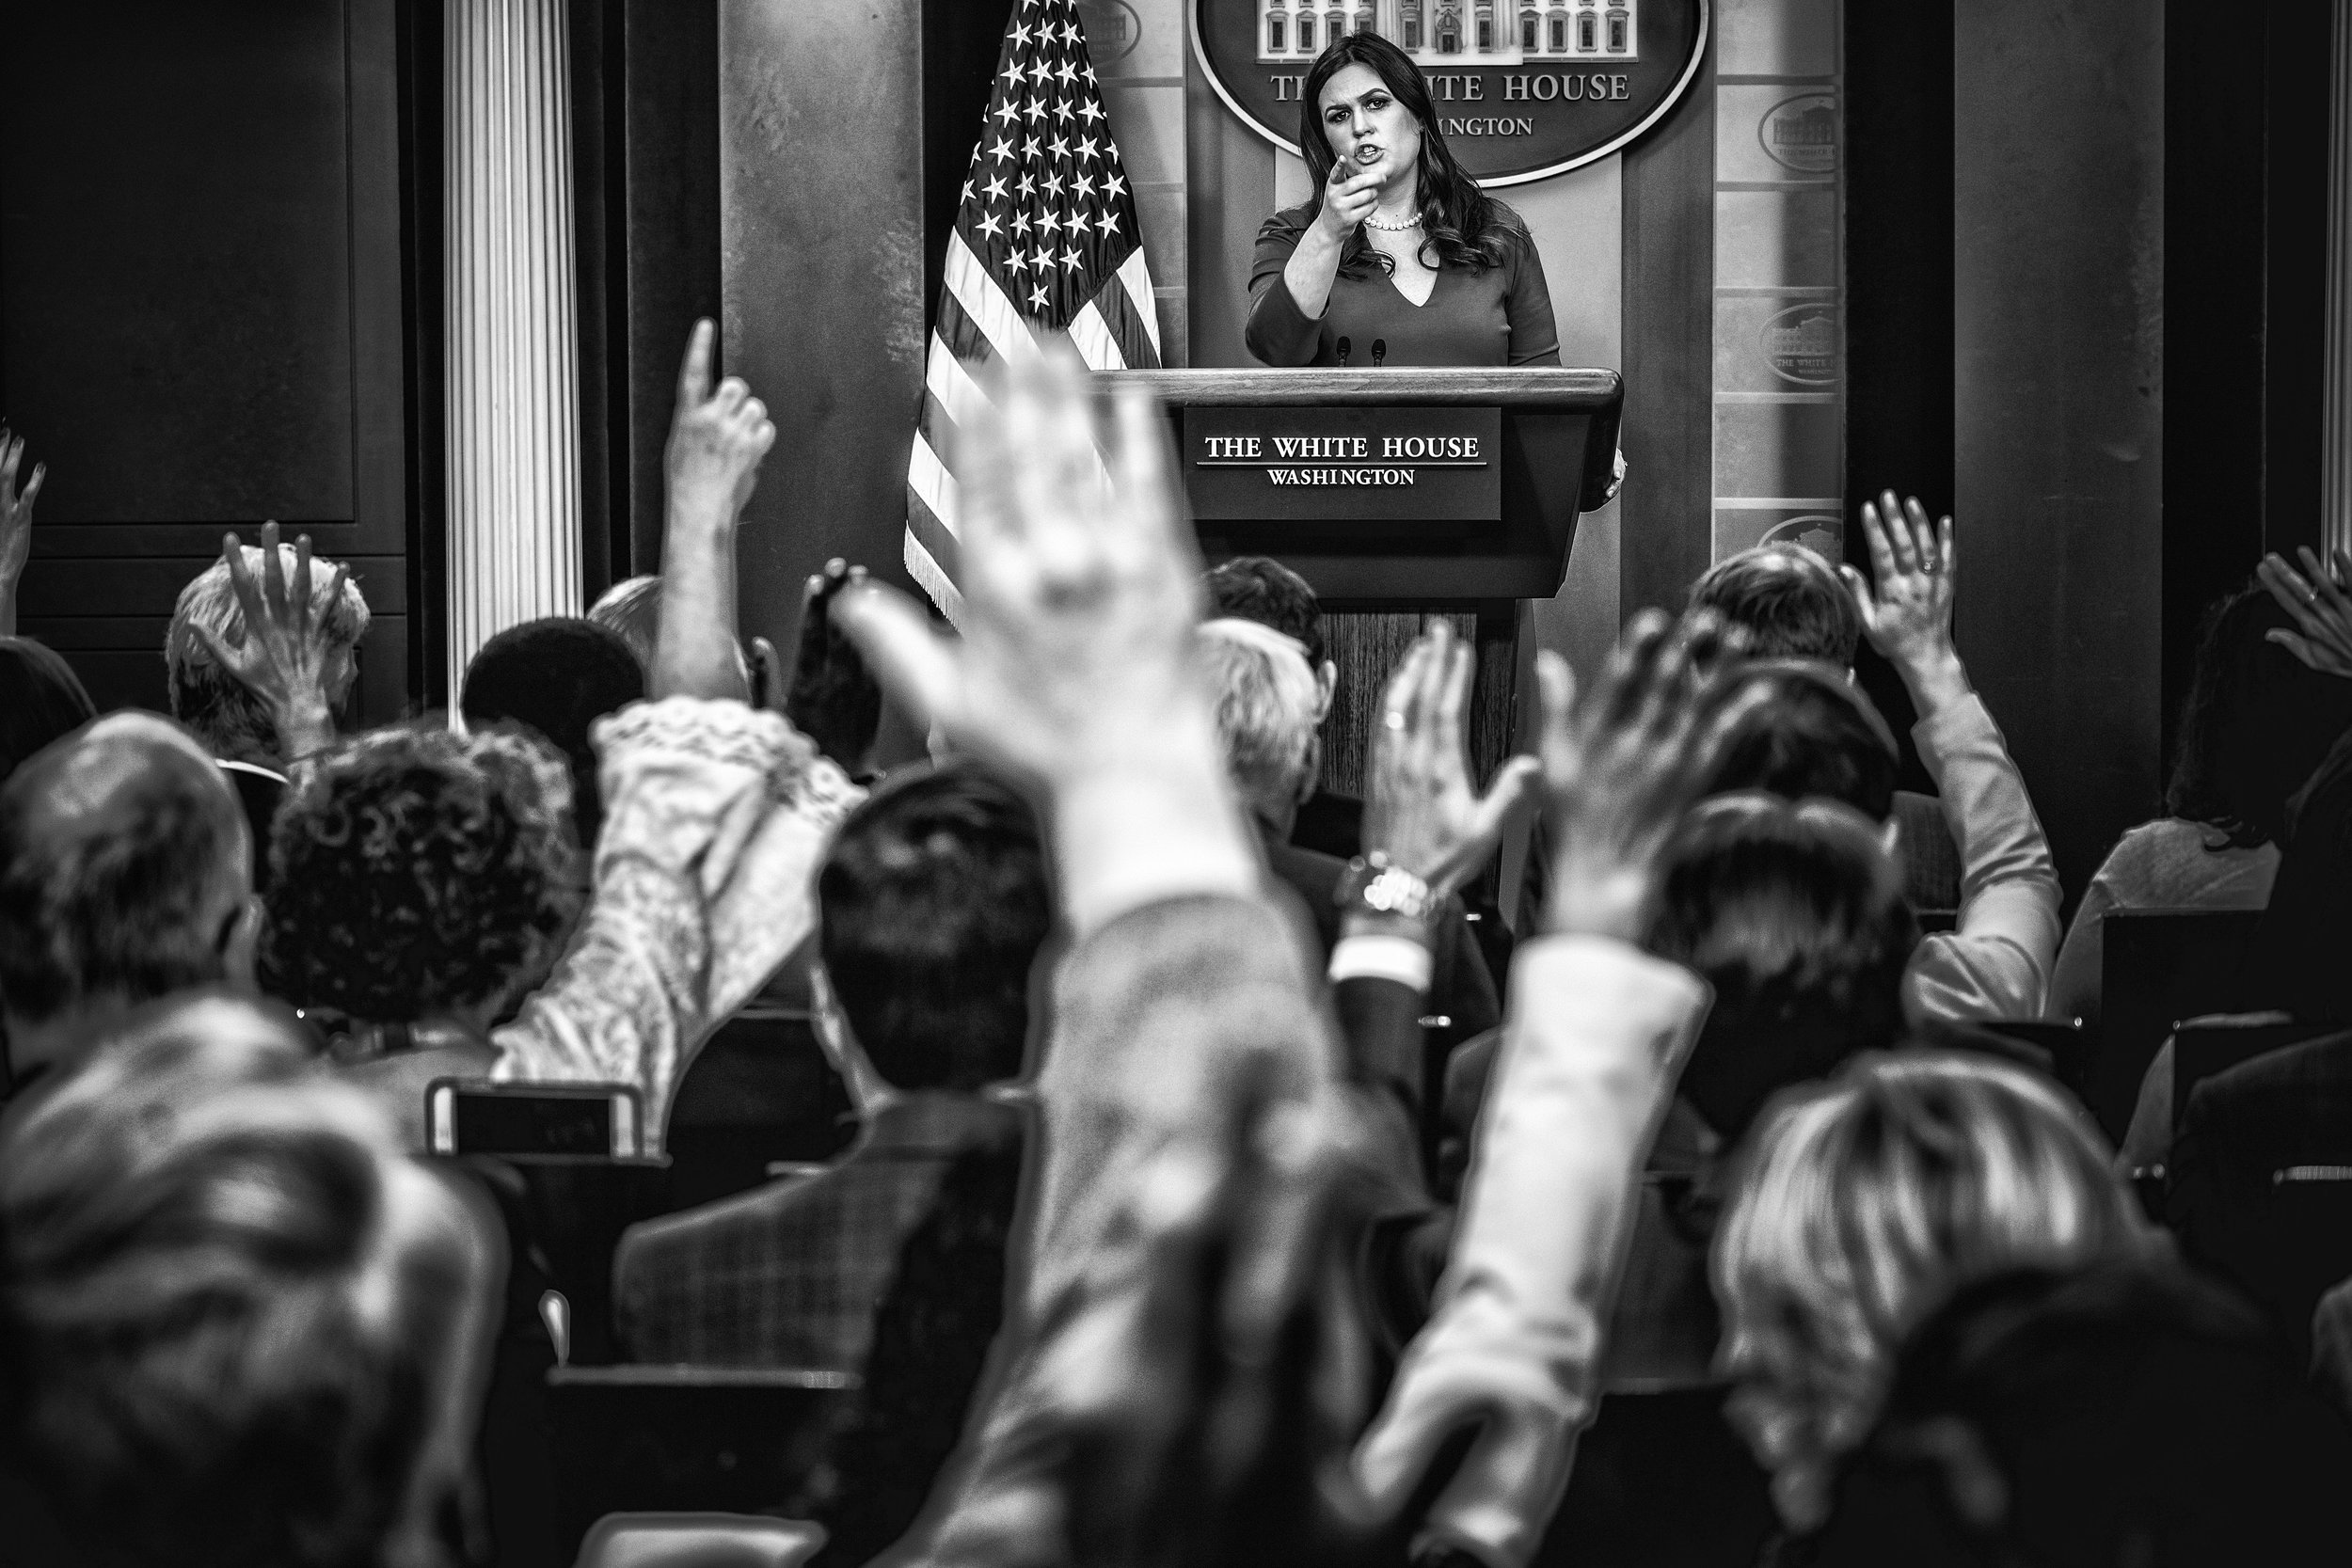 Day 281: White House Press Secretary Sarah Sanders in Washington, DC on October 27, 2017.